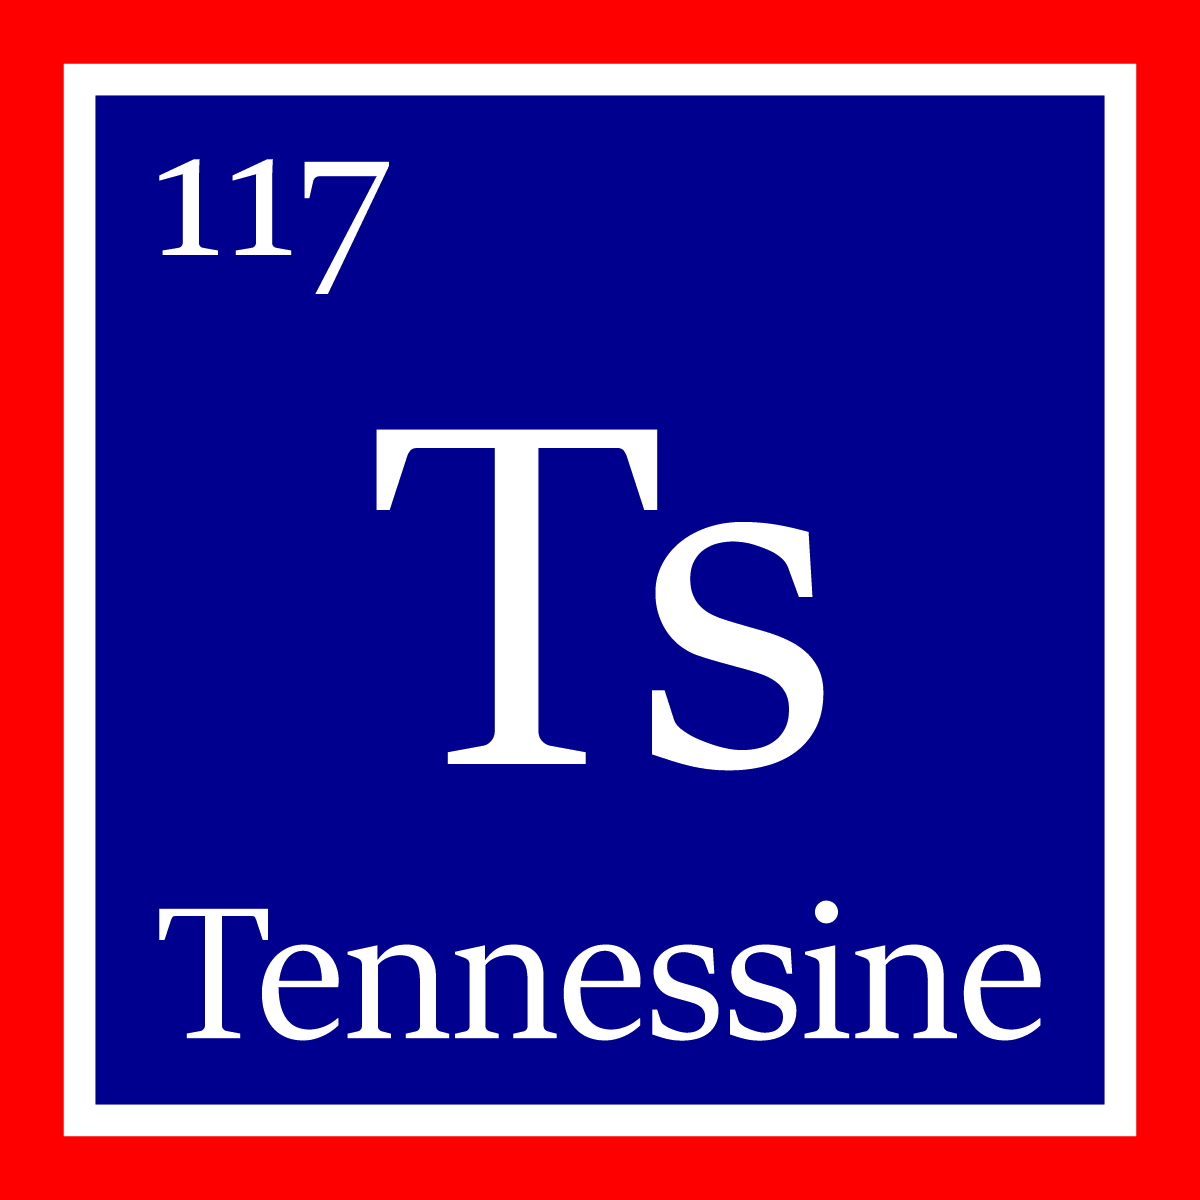 Tennessine element 117 officially named the new element tennessine is denoted by the symbol ts on the periodic table credit ornl urtaz Image collections